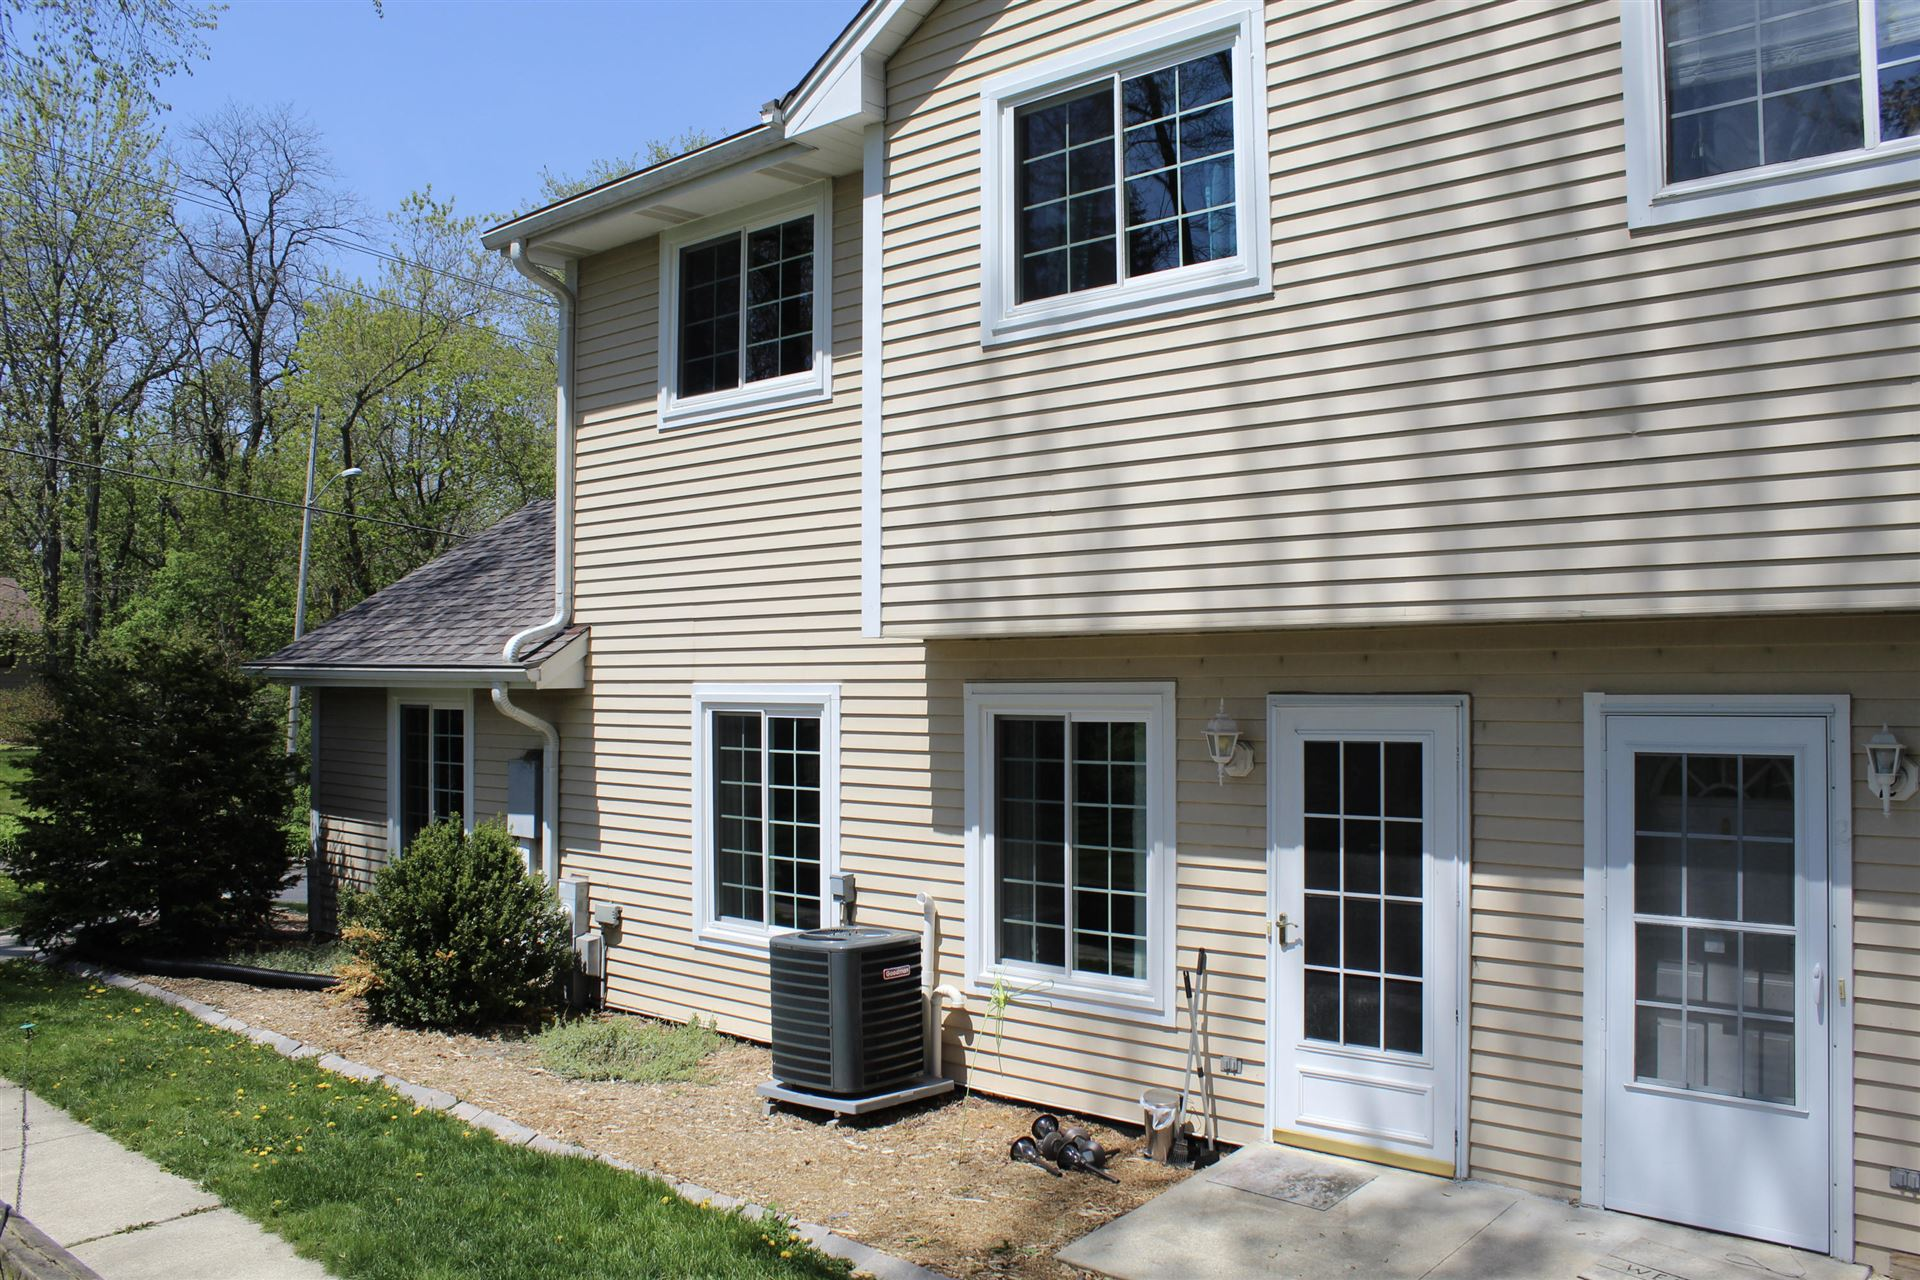 1876 Division St #1, East Troy, WI 53120 - #: 1688927